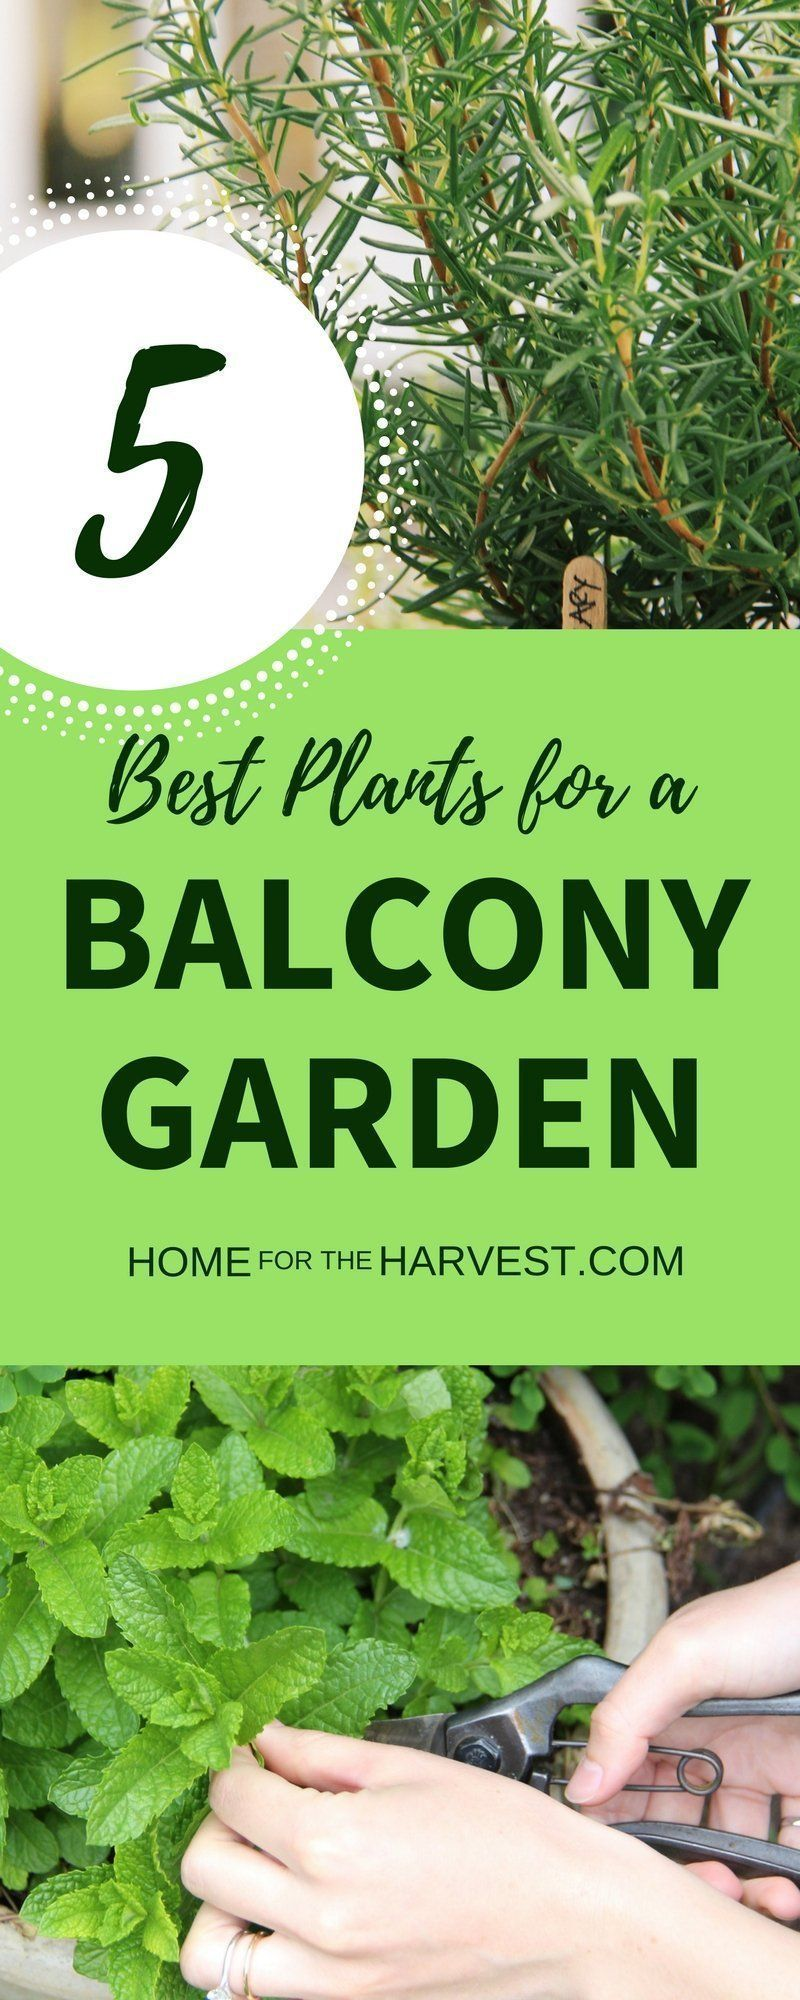 Photo of #balcony The Top 5 Plants for a Balcony Vegetable Garden